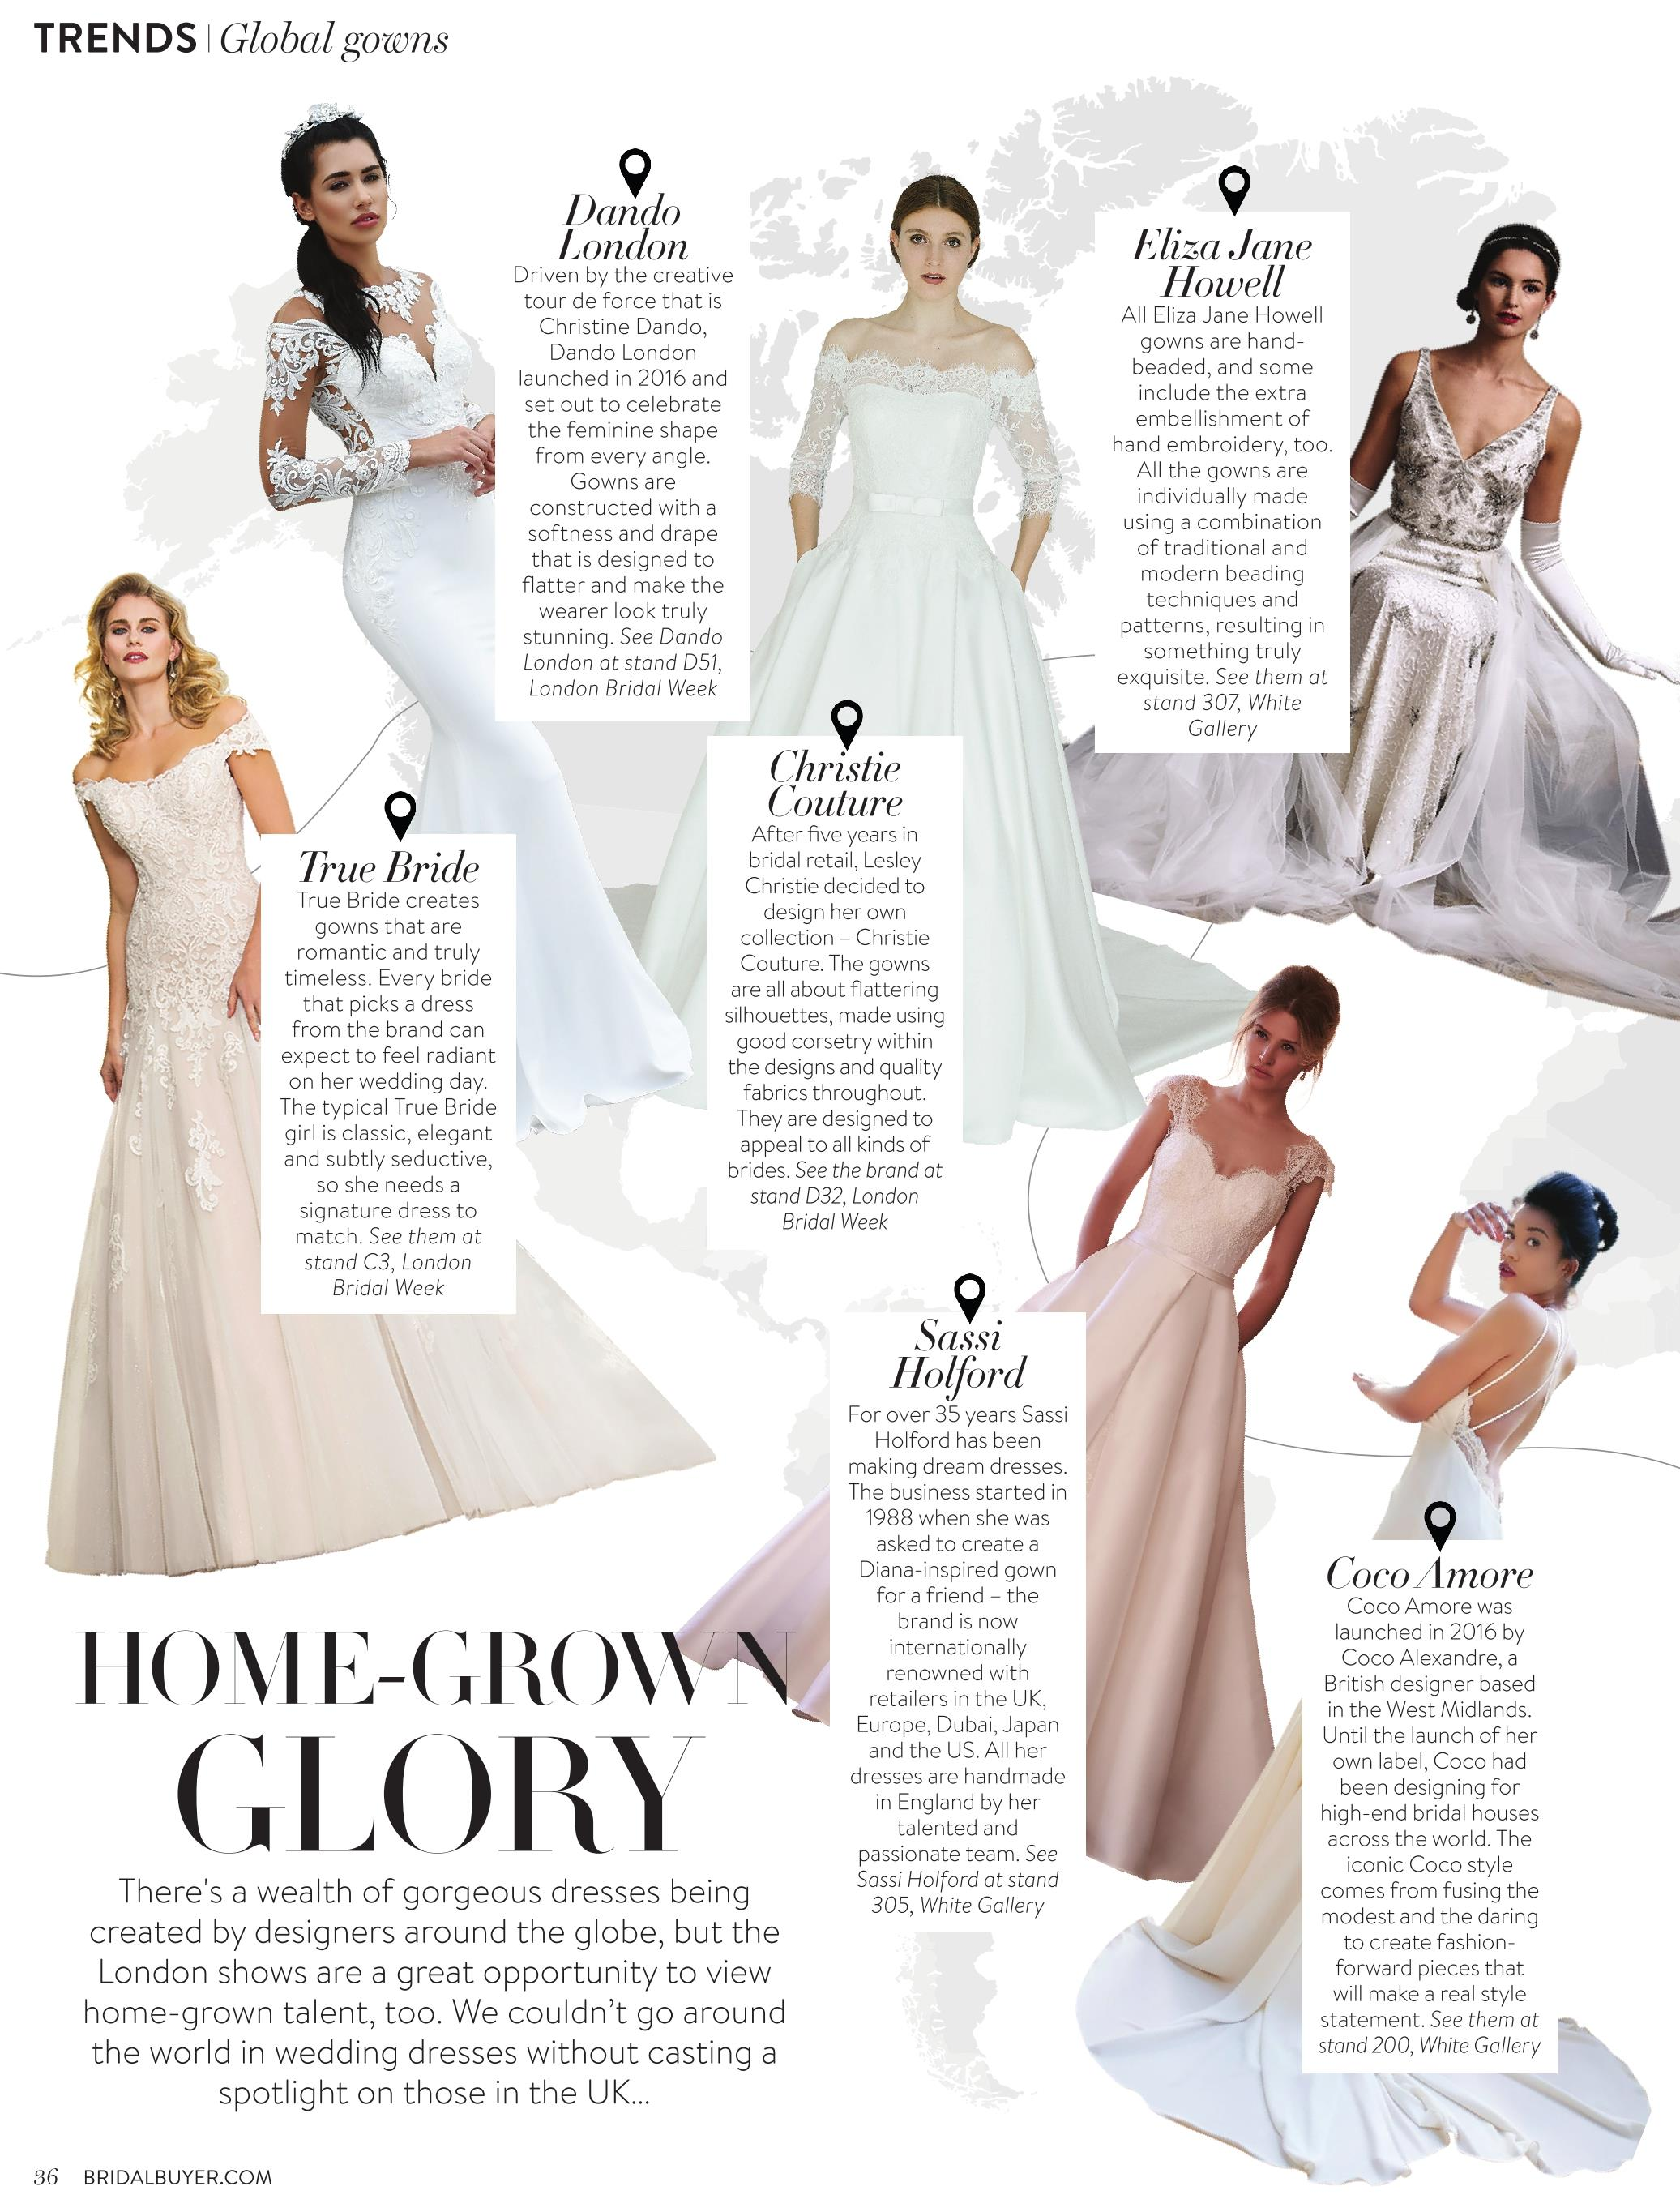 London Bridal Week - March 2018 | Christie Couture